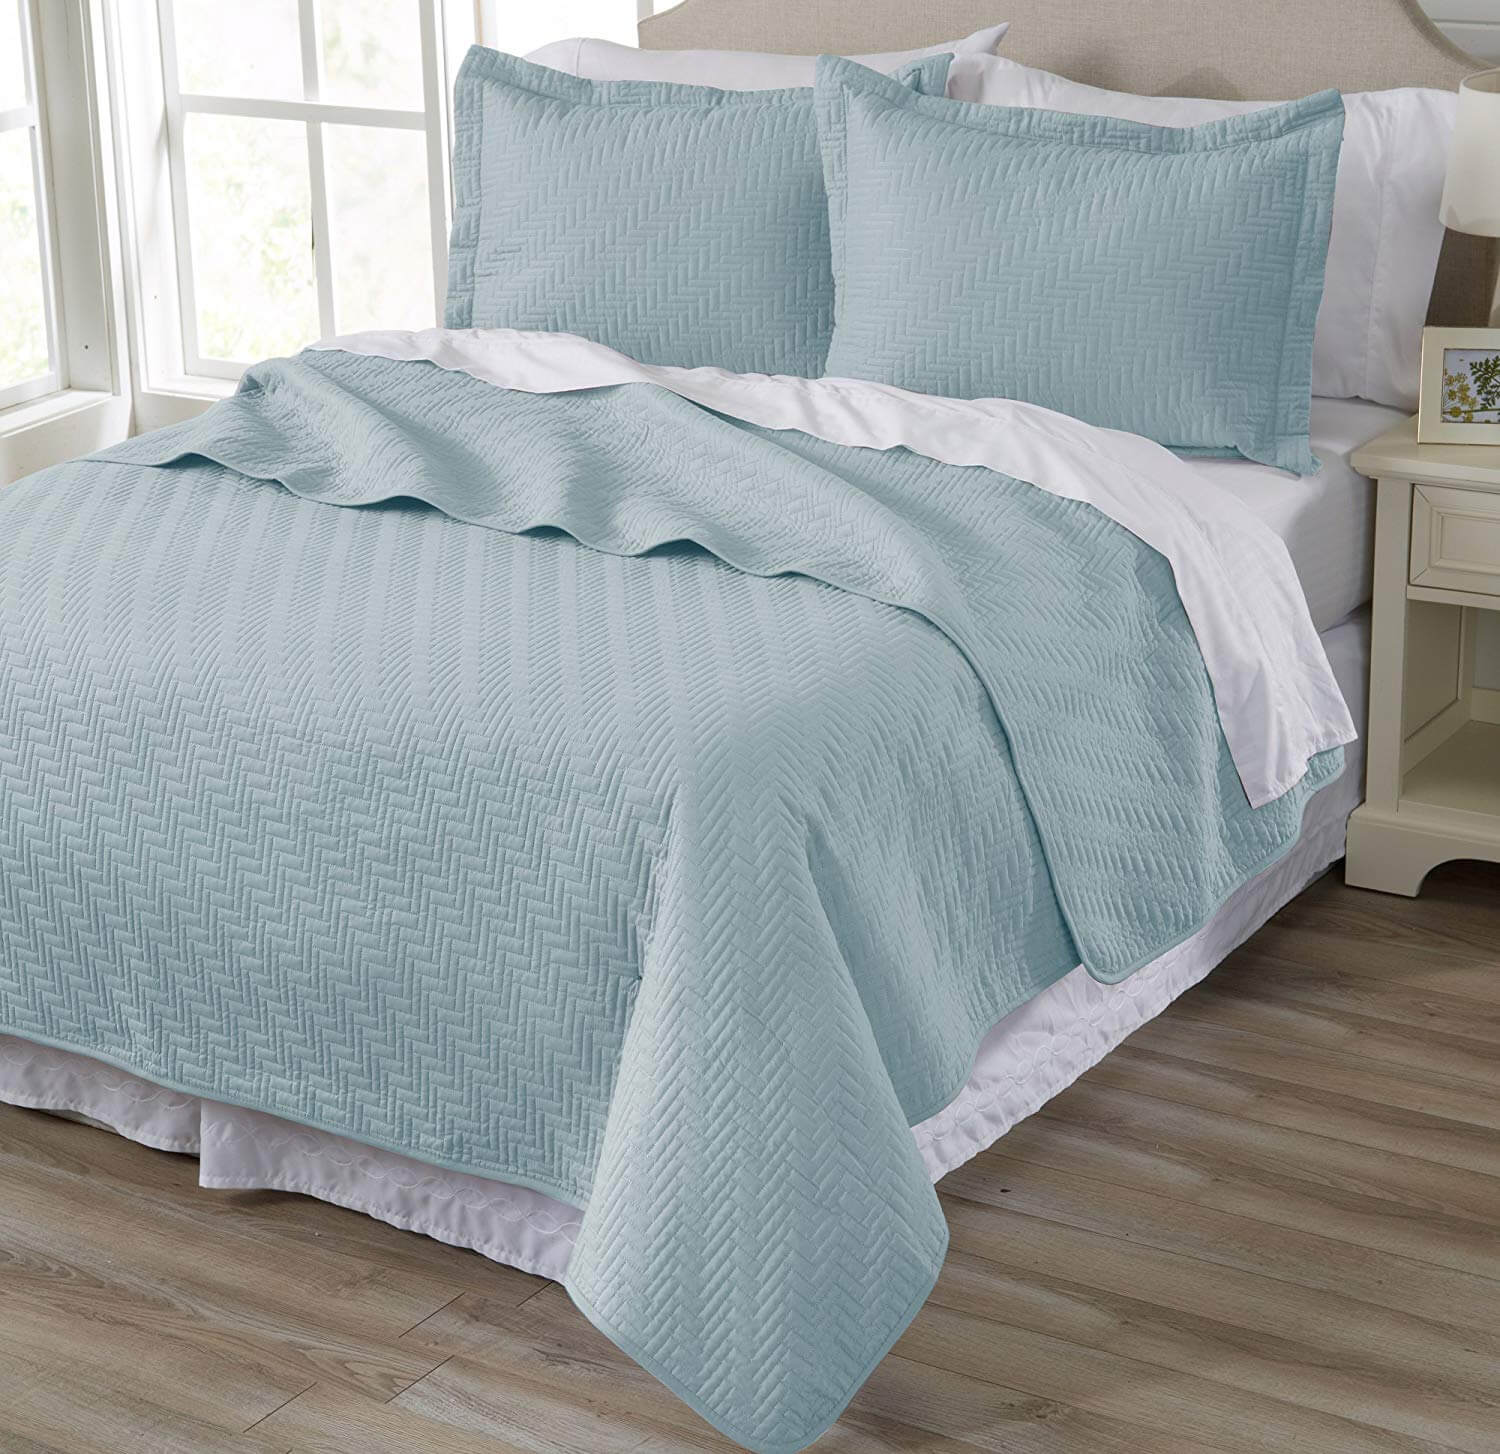 10. 3-Piece Luxury Quilt Set with Shams